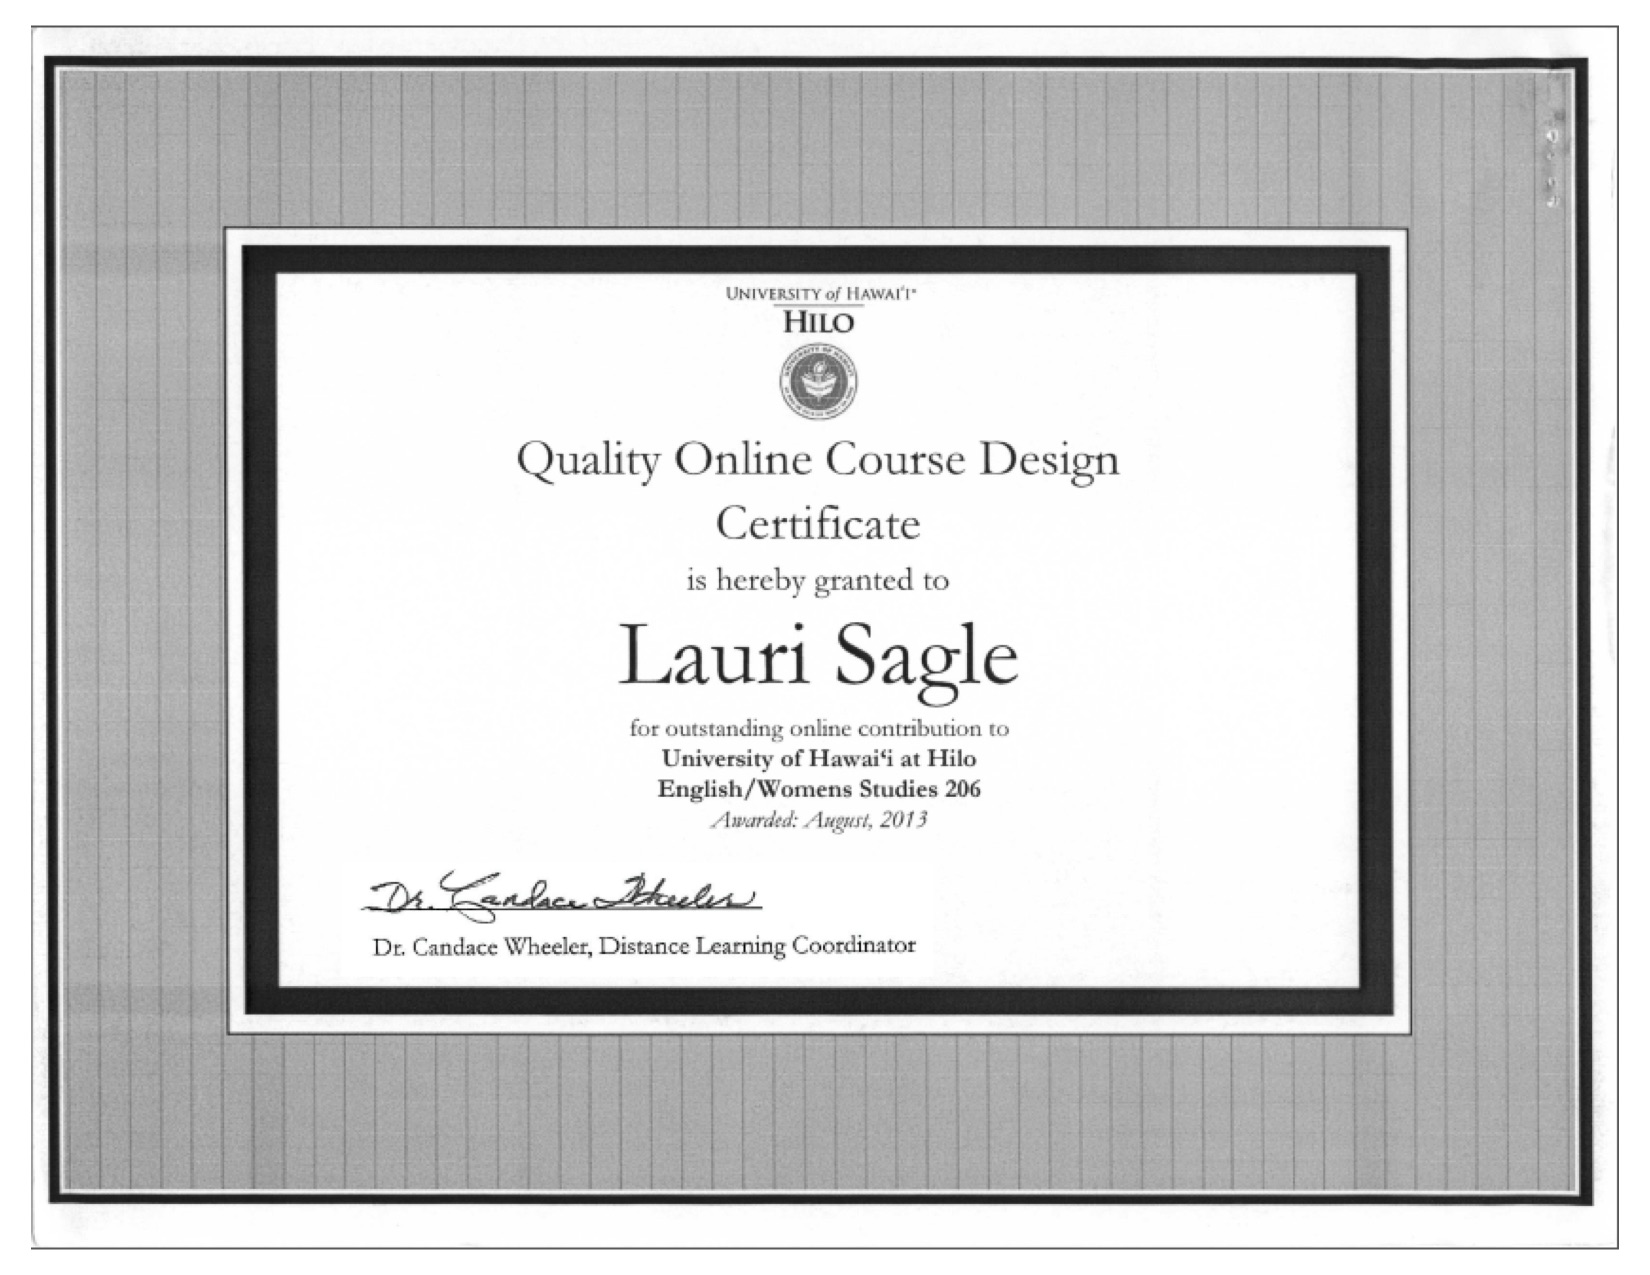 Quality Online Course Design Certificate, awarded to Lauri Sagle